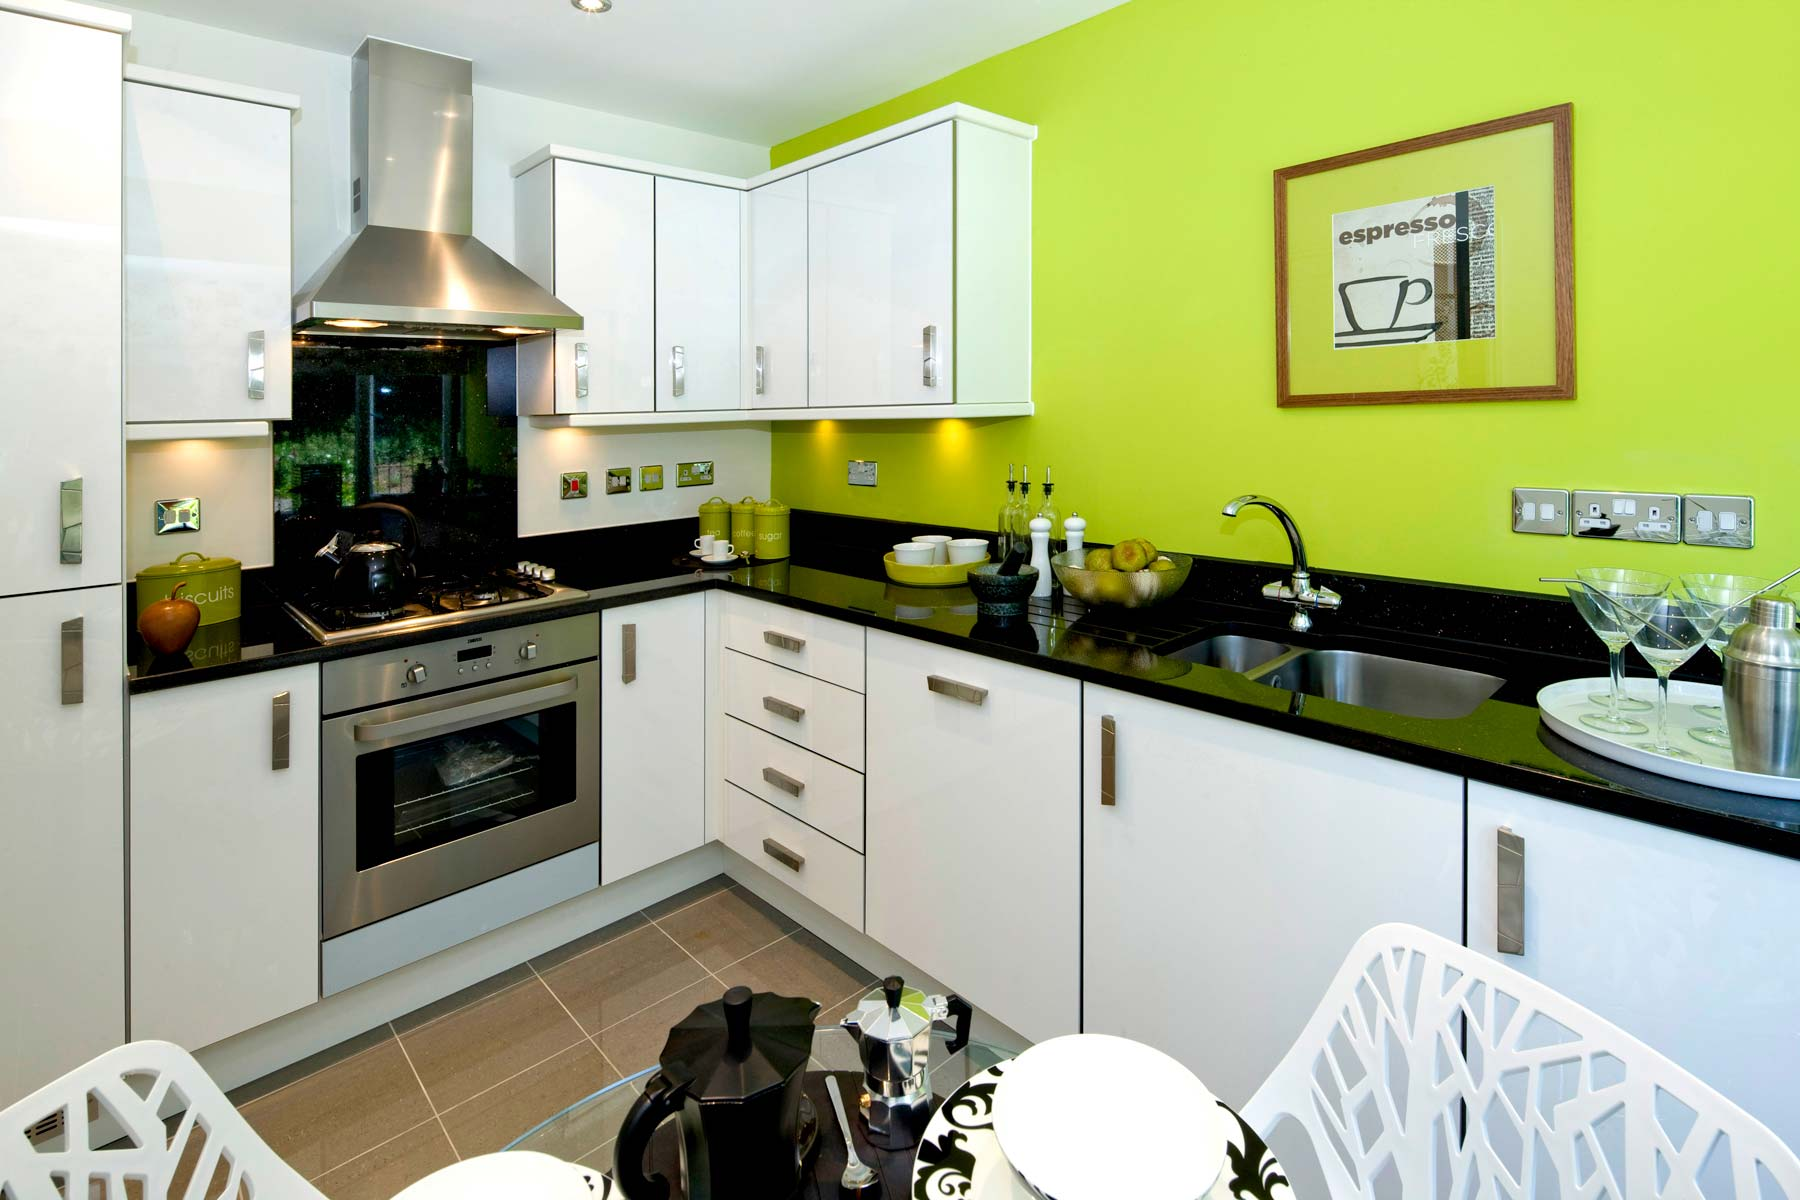 A Typical Taylor Wimpey Showhome Kitchen Leybourne (4)